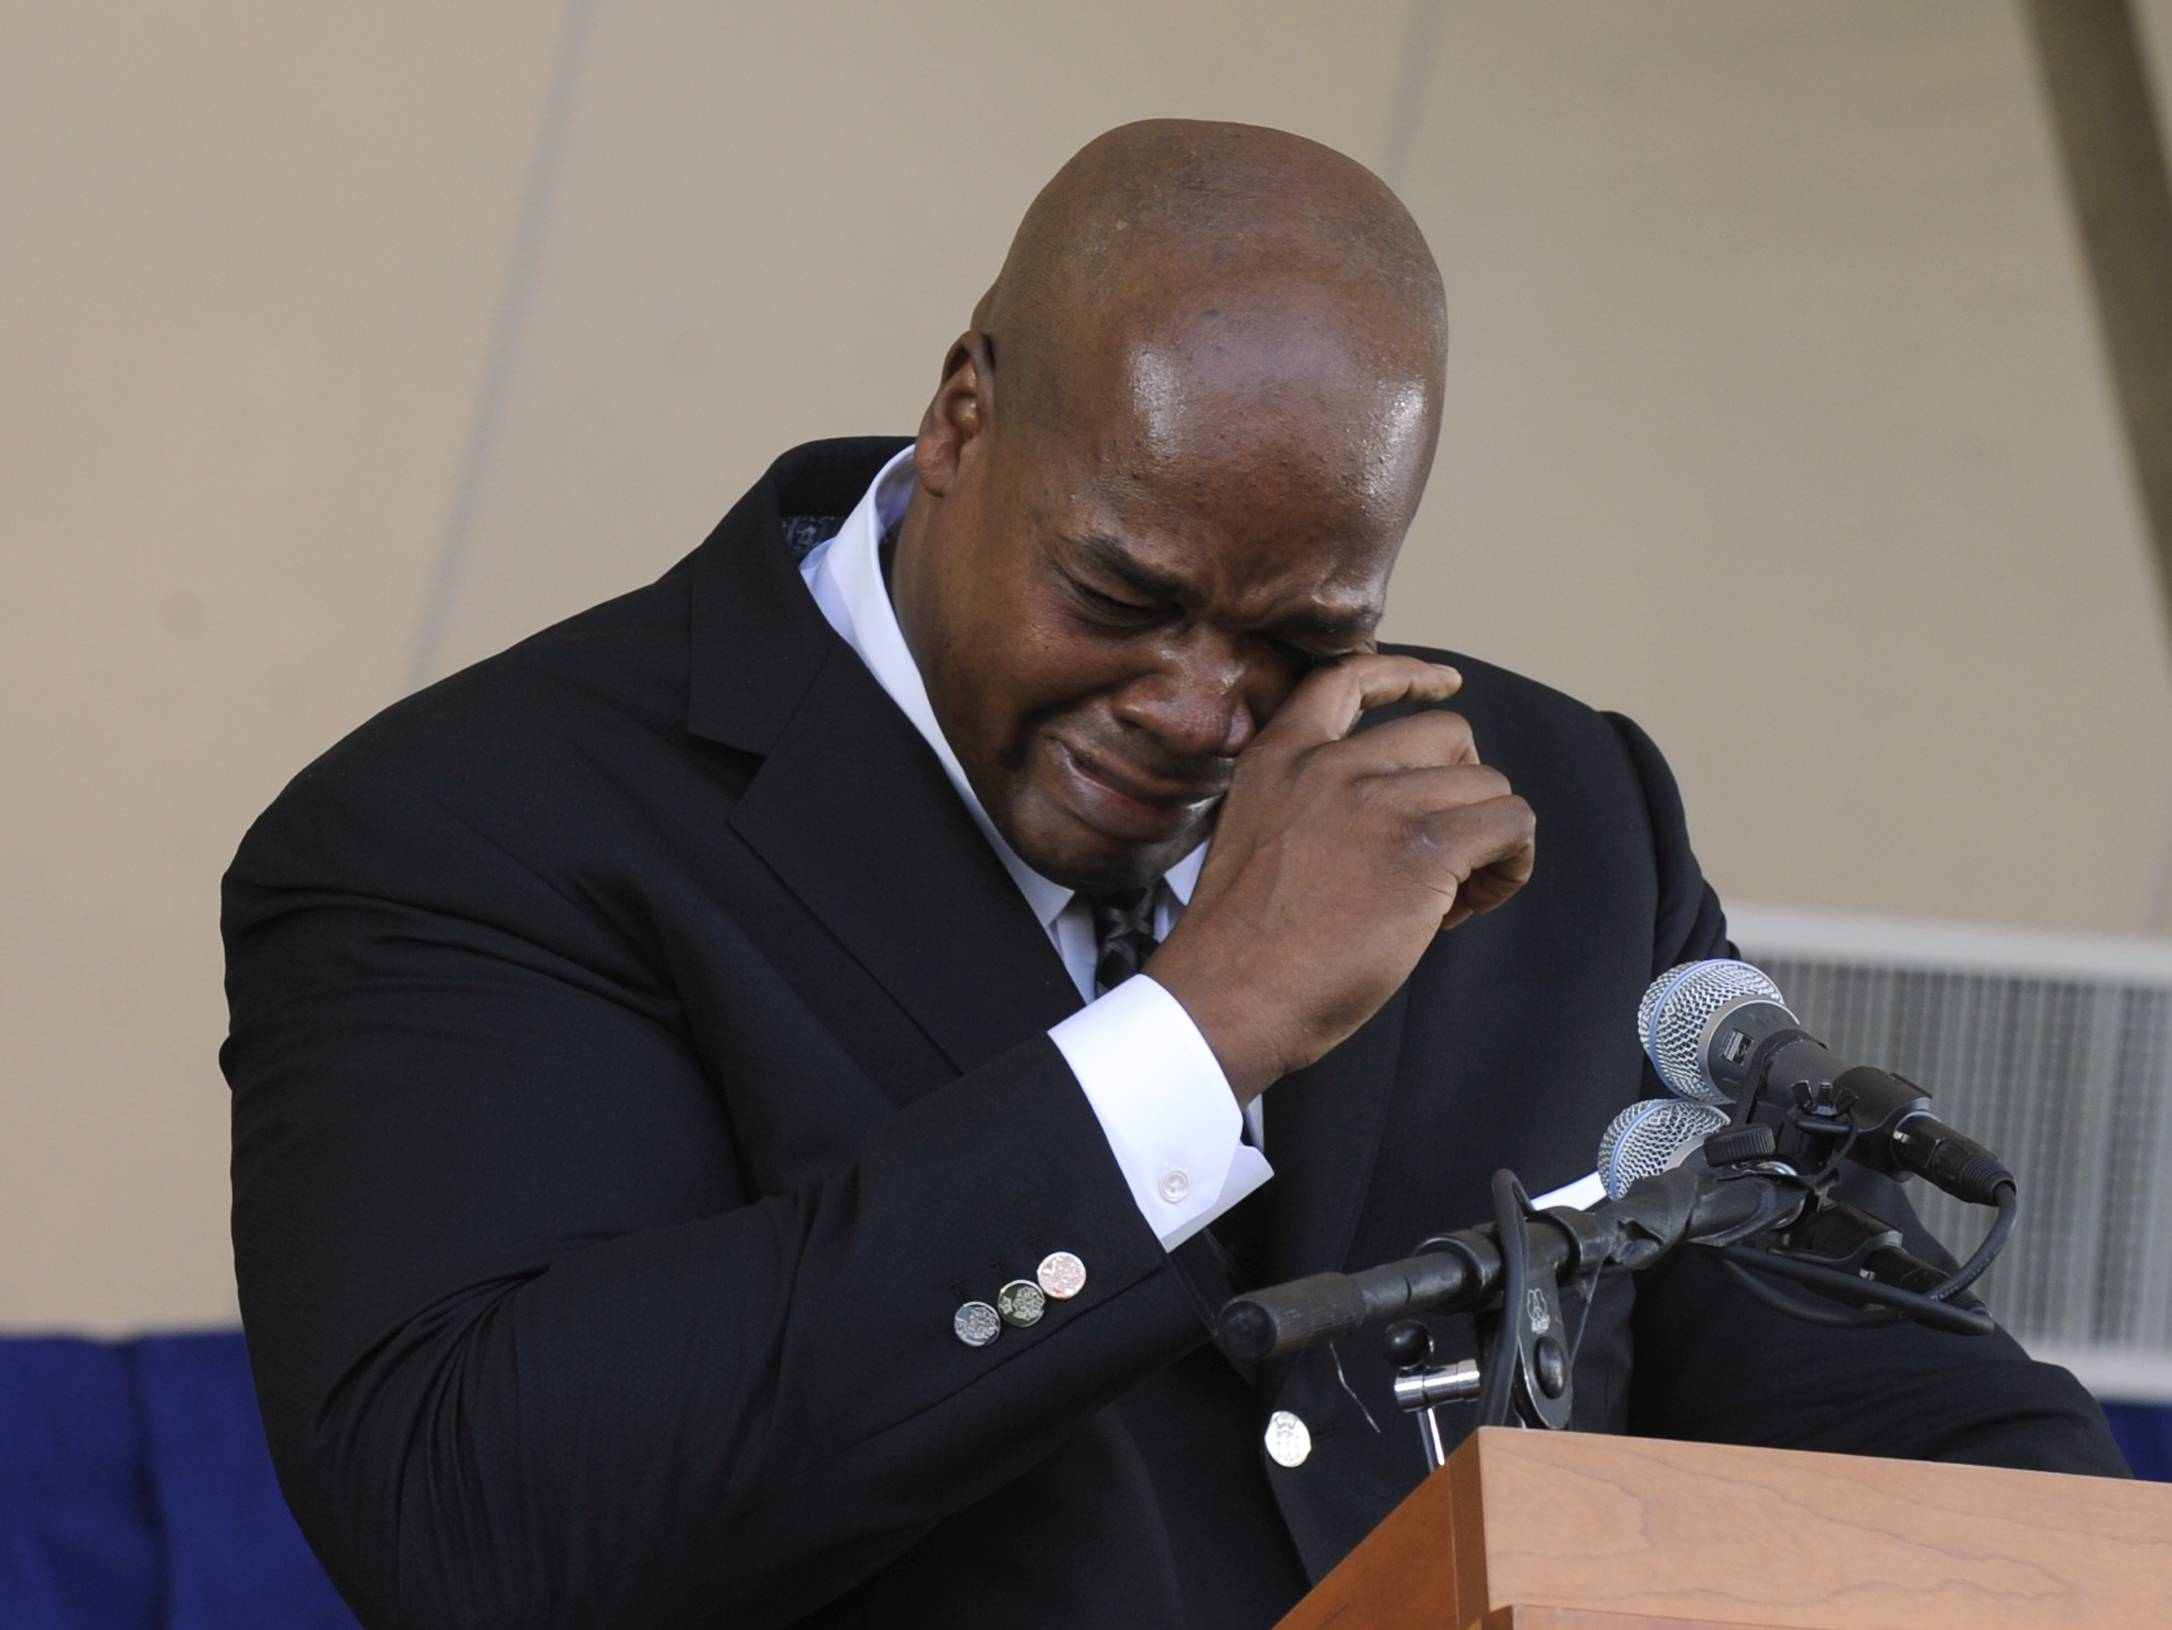 Frank Thomas spoke from the heart and stole the show Sunday during his emotional Hall of Fame induction speech.